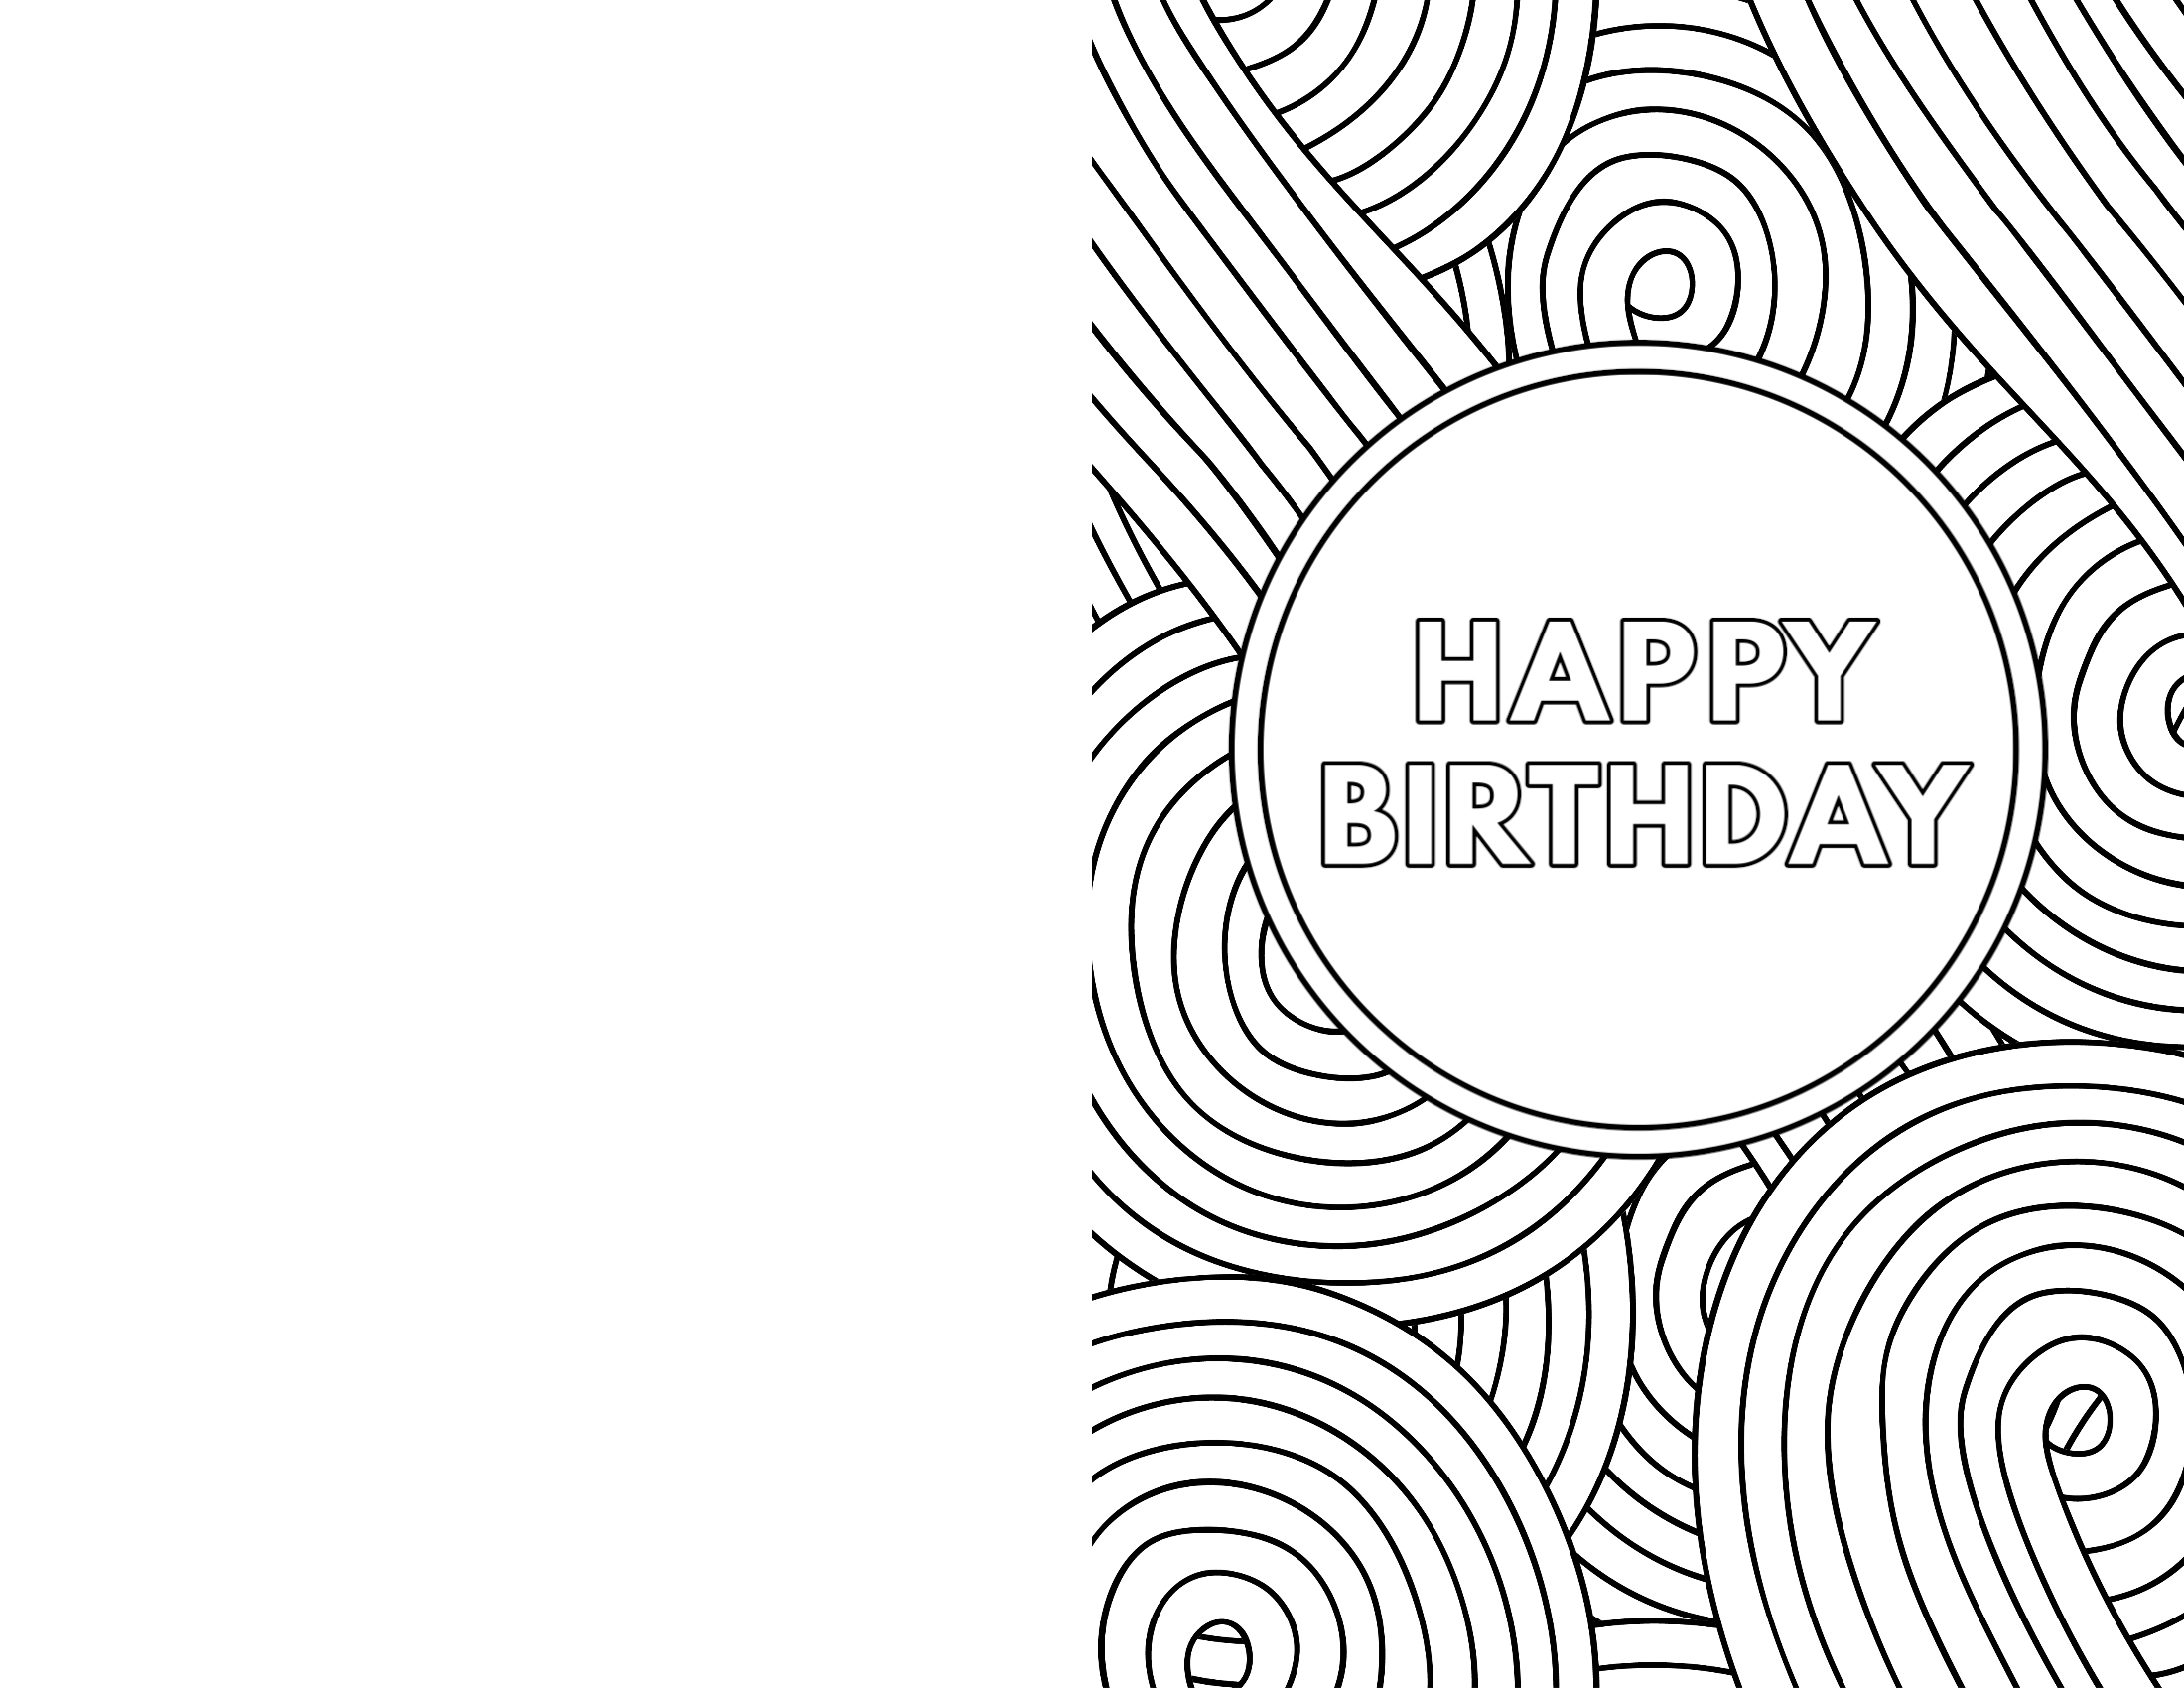 coloring printable birthday cards free happy birthday mom coloring pages getcoloringpagescom birthday printable free cards coloring